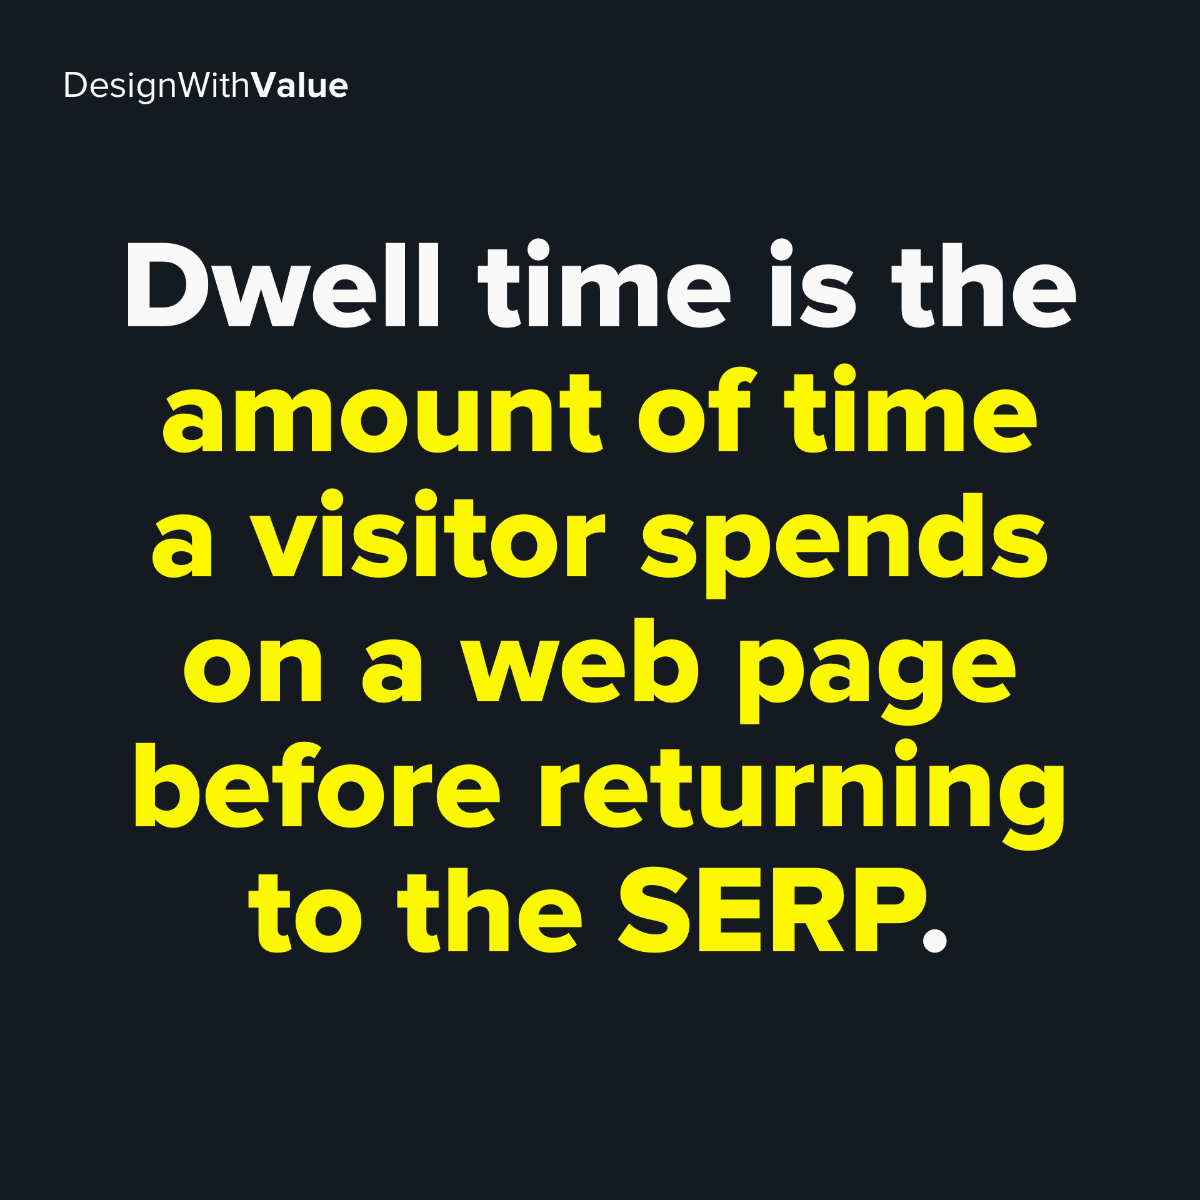 Dwell time is the amount of time a visitor spends on a web page before returning to the search engine results page